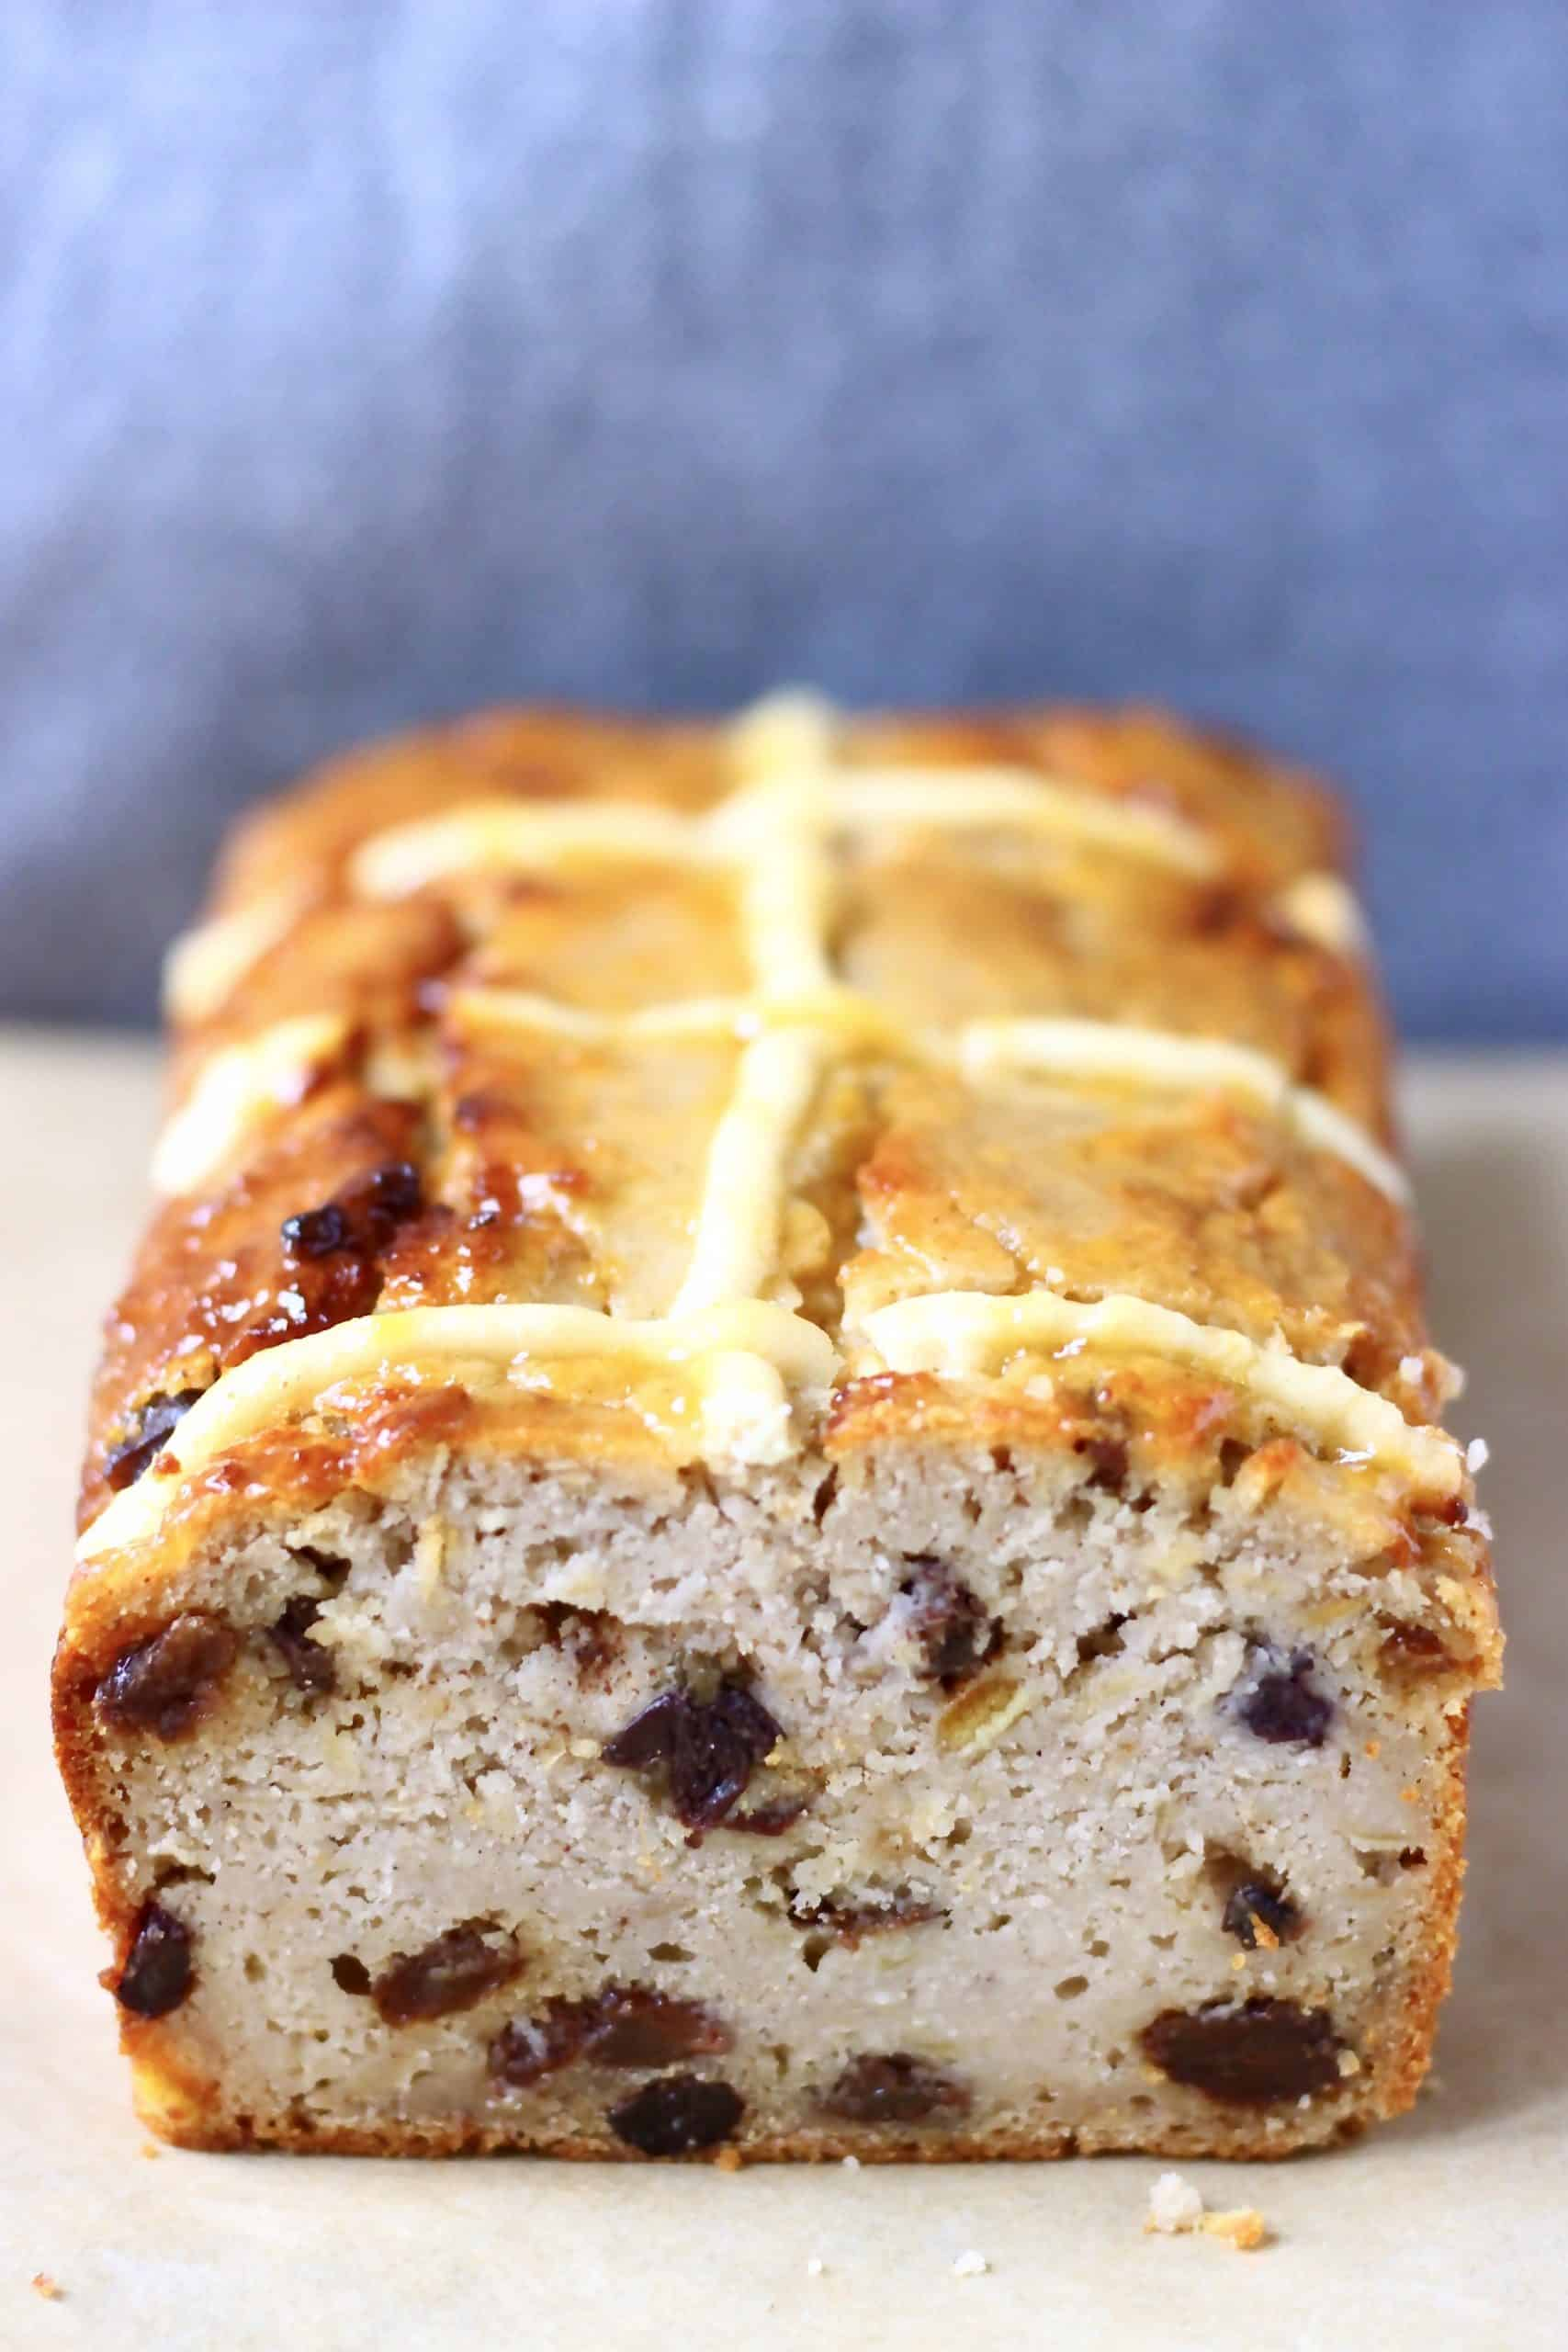 Hot cross bun loaf on a sheet of brown baking paper against a grey background